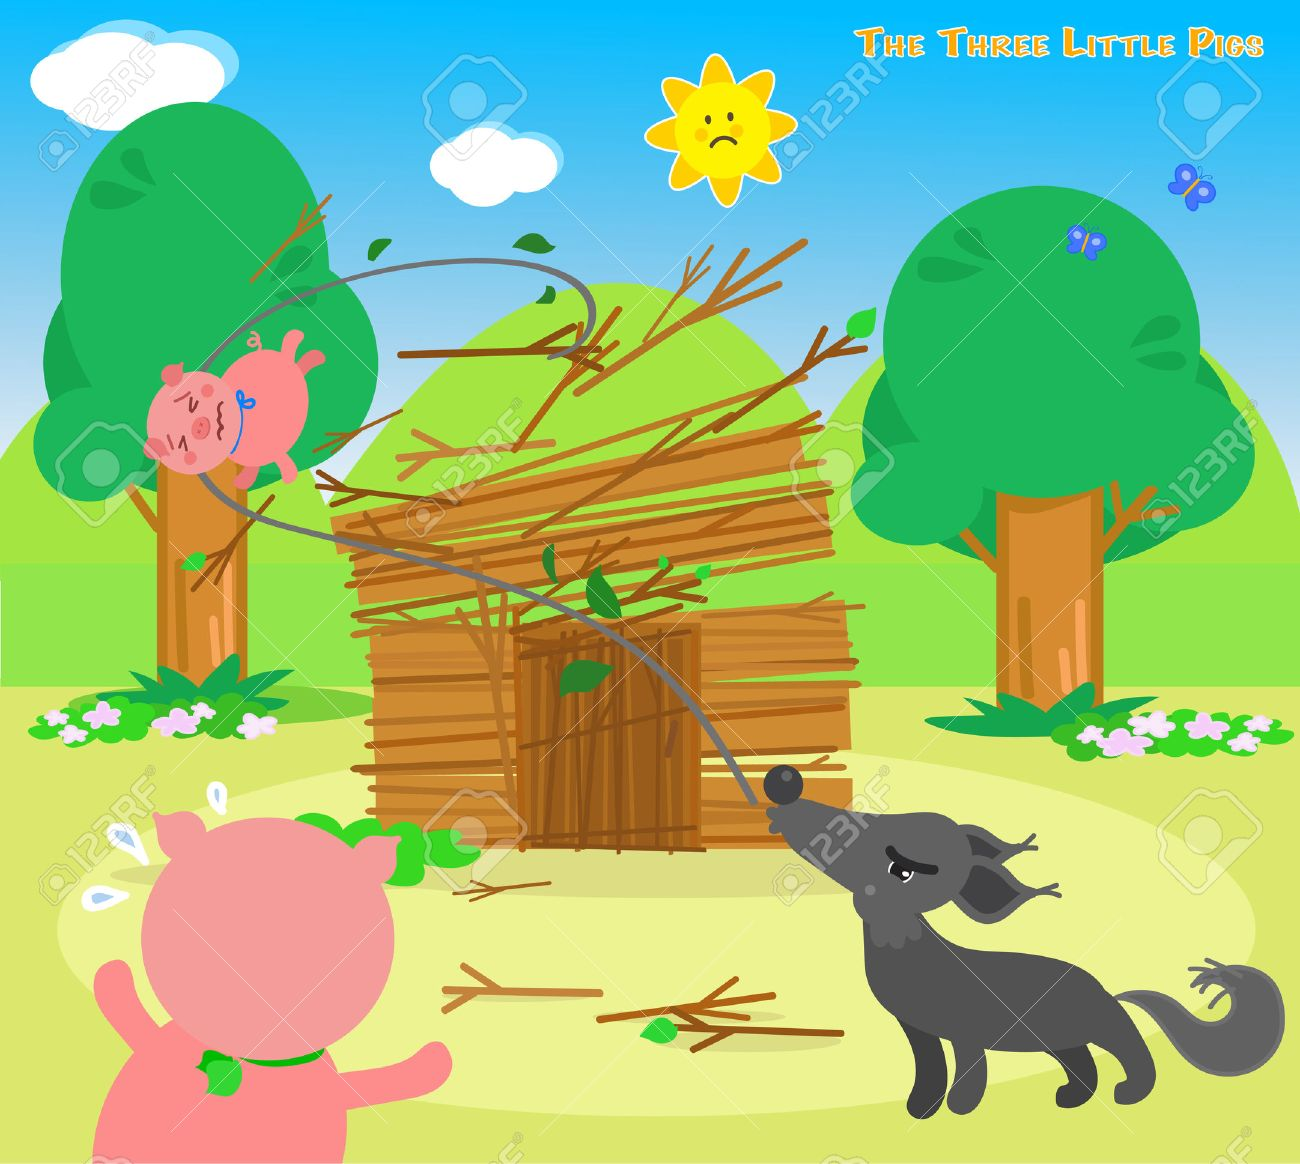 The three little pigs, wolf destroys the sticks house Stock Vector - 53927018